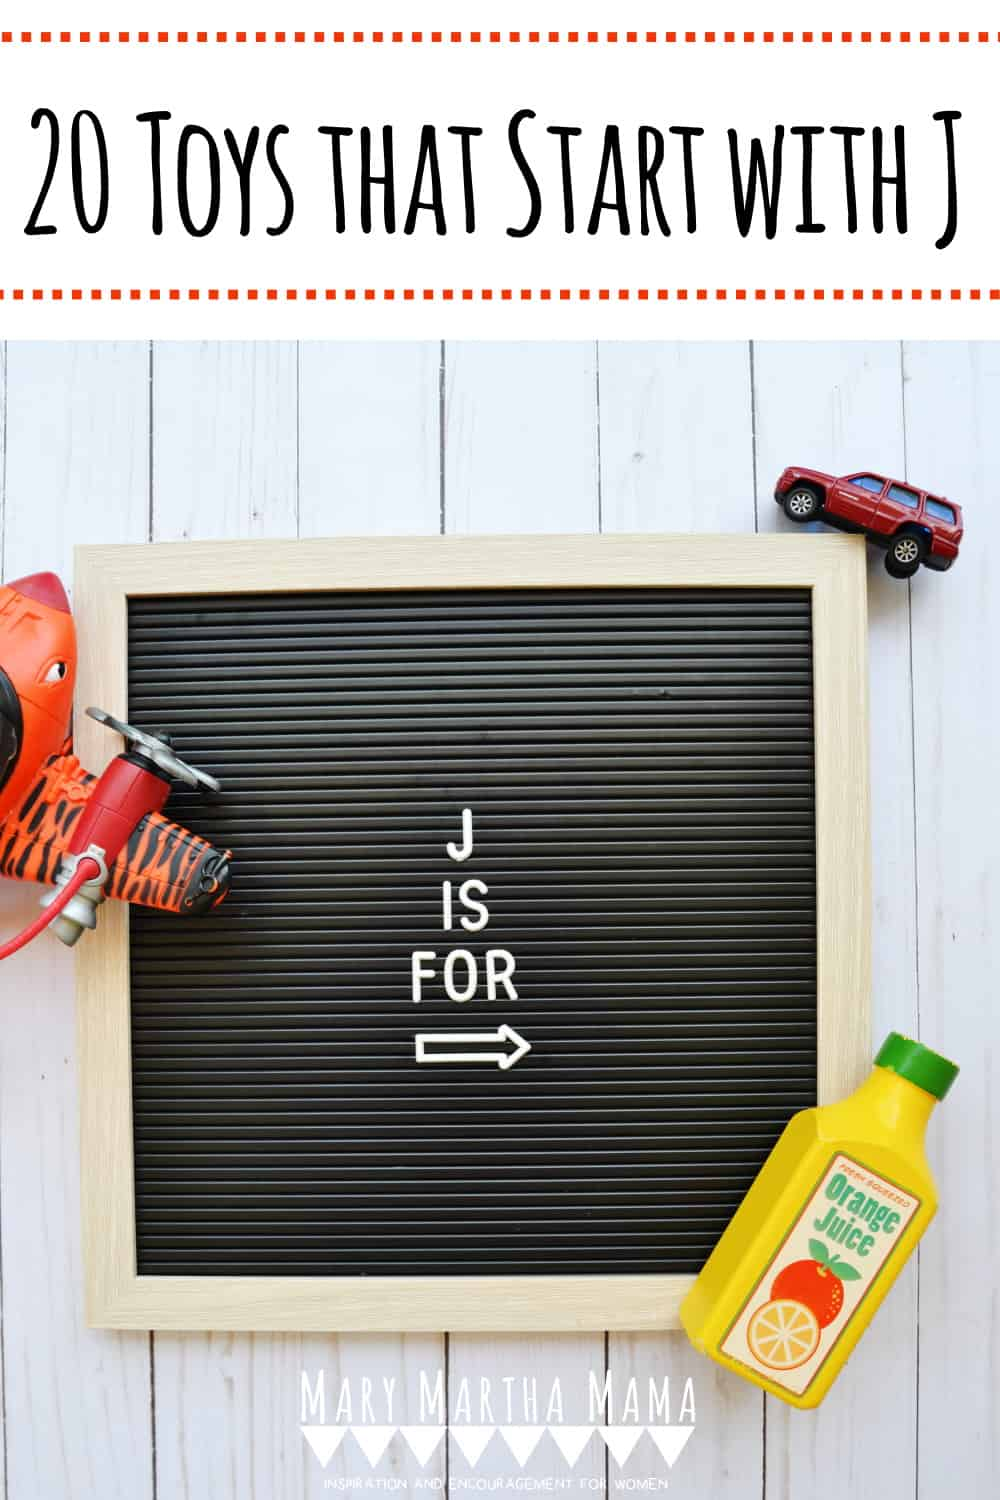 If you have a preschooler or kindergartener with a letter of the week show and tell then you need to check out this list of Toys that Start with J.